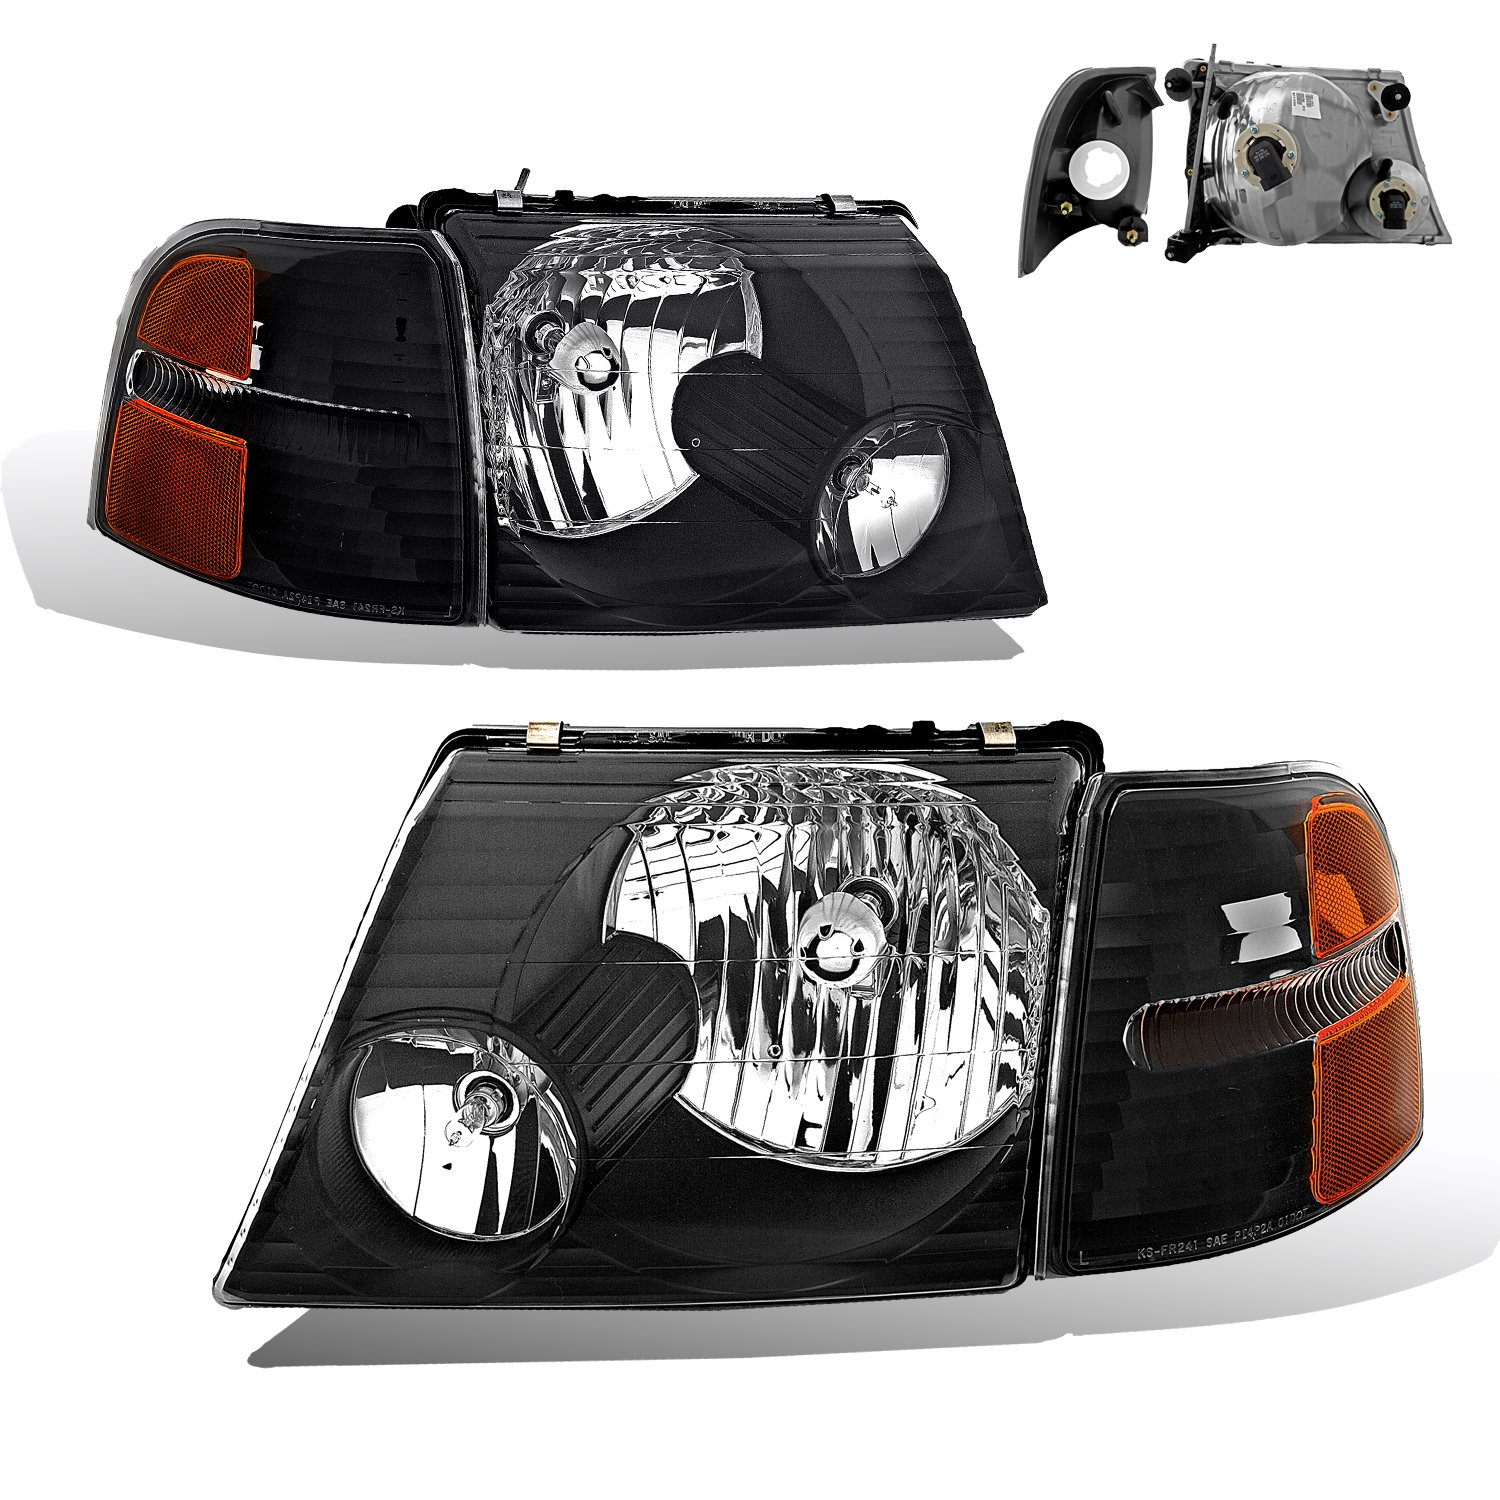 SPPC Headlights Black with Corner For Ford Explorer - (Pair)